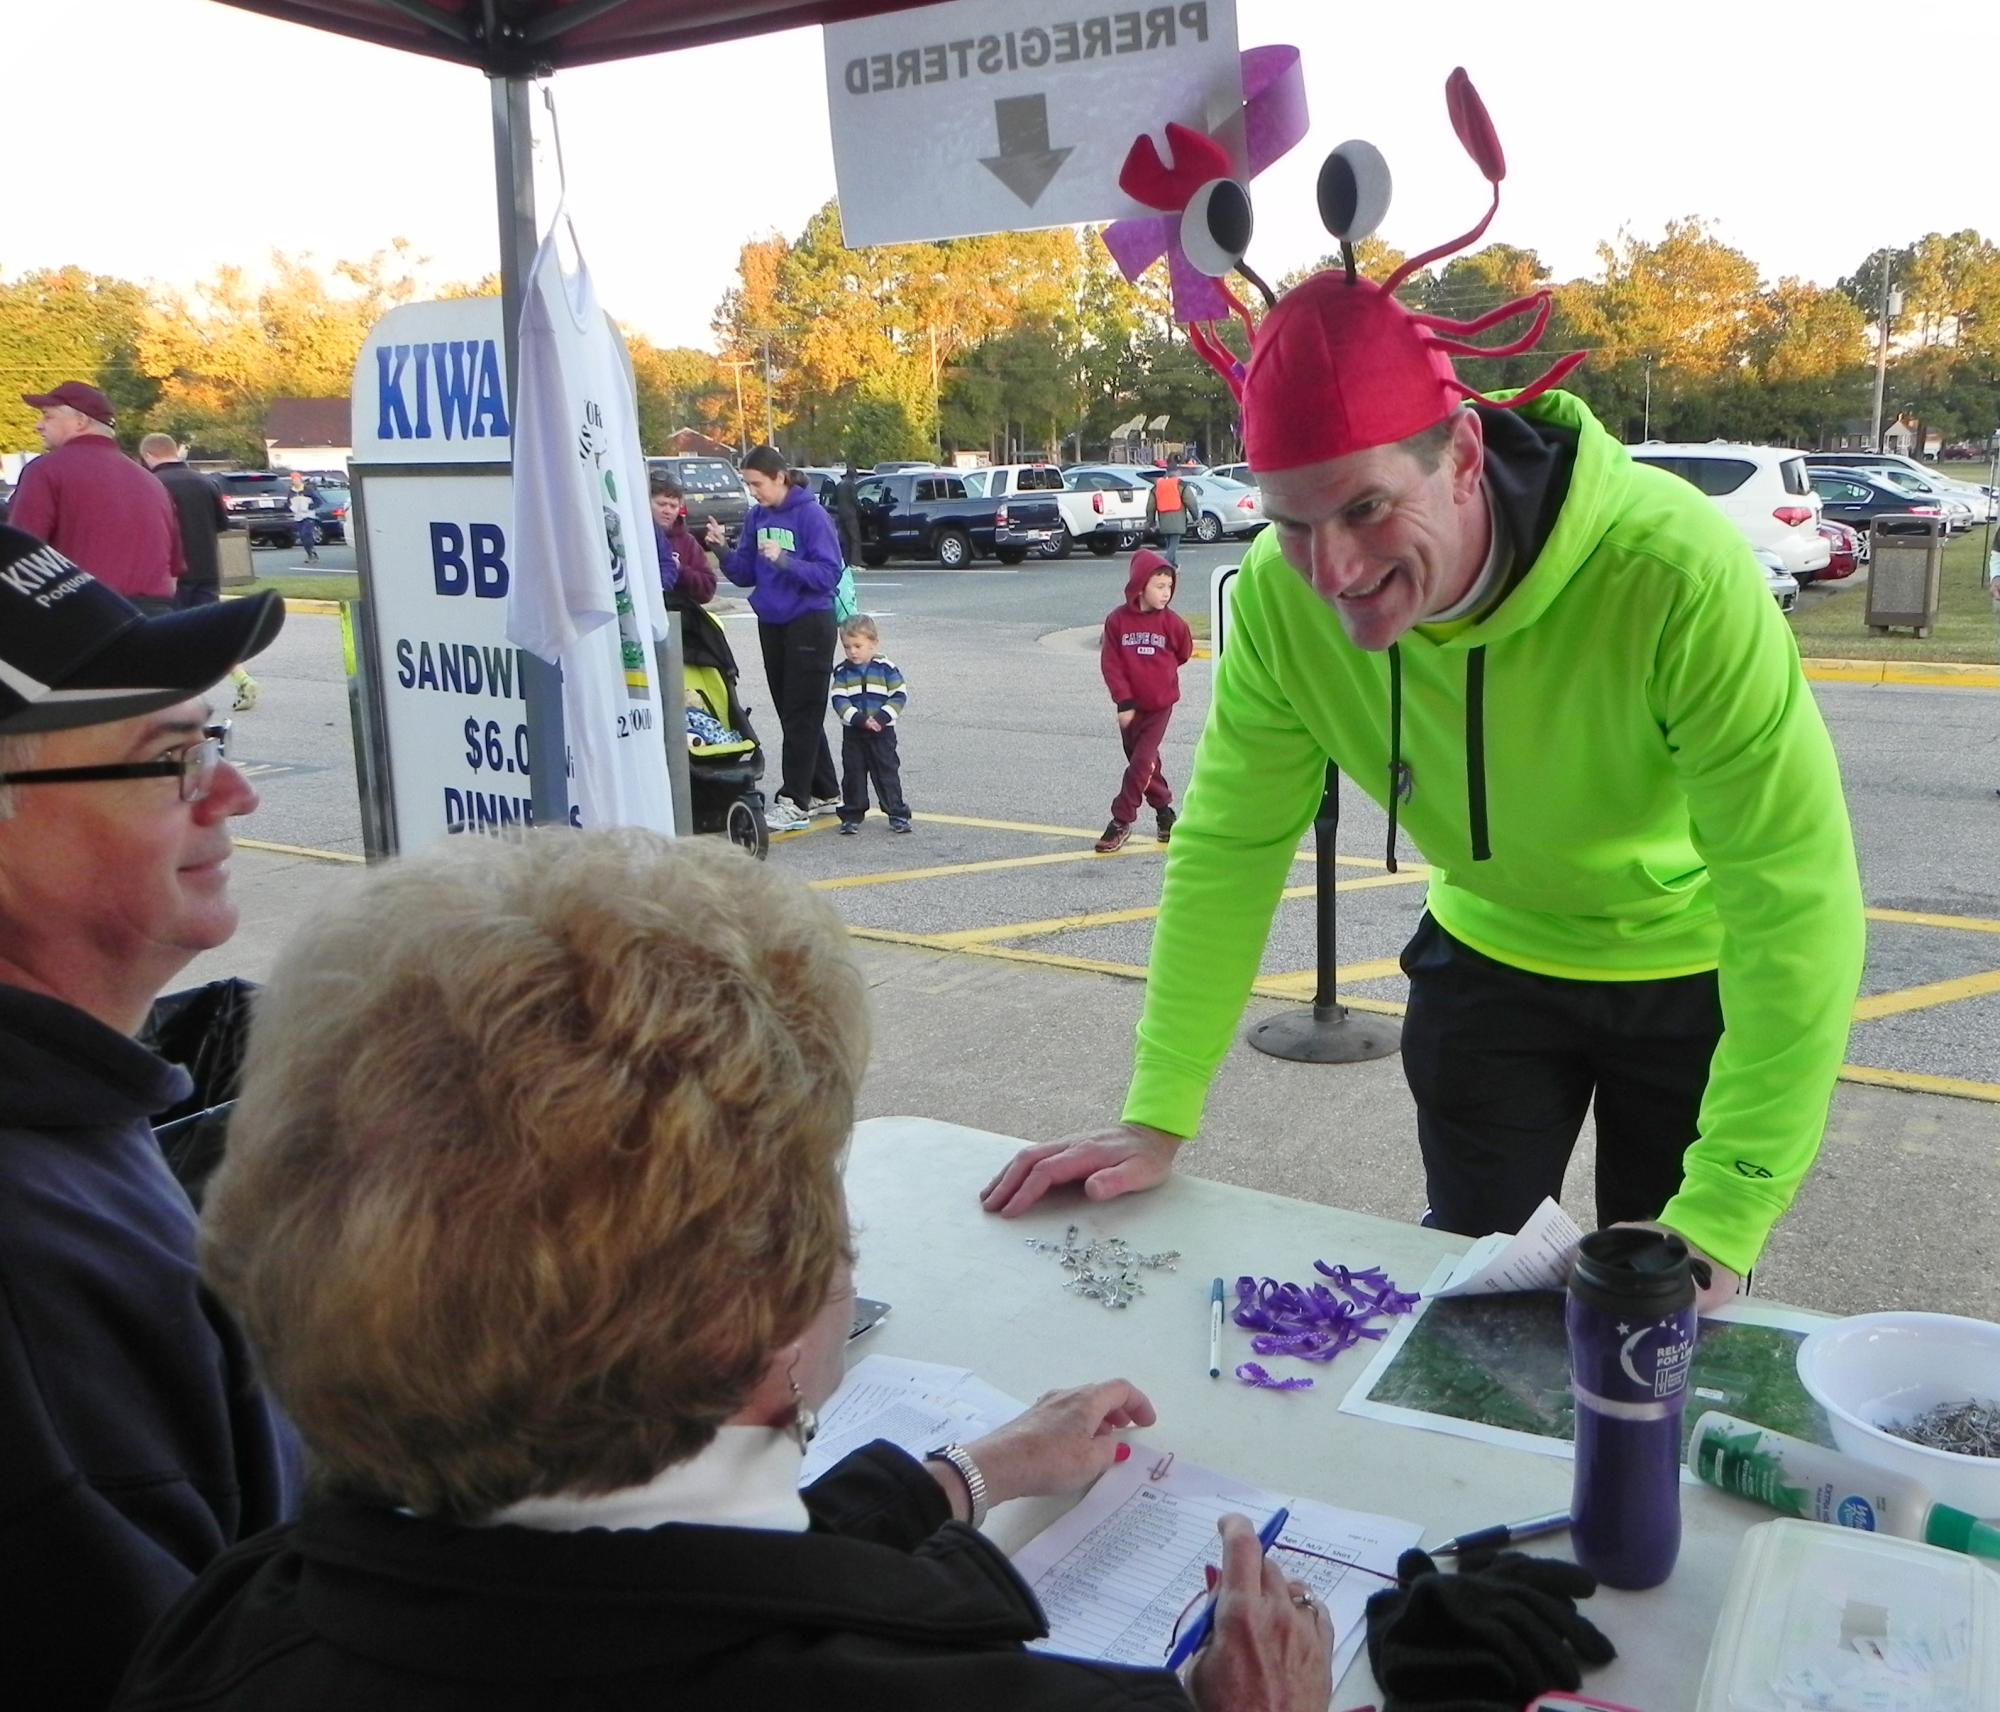 rich-clifton-checking-out-registration-table-oct-31-2015.jpg